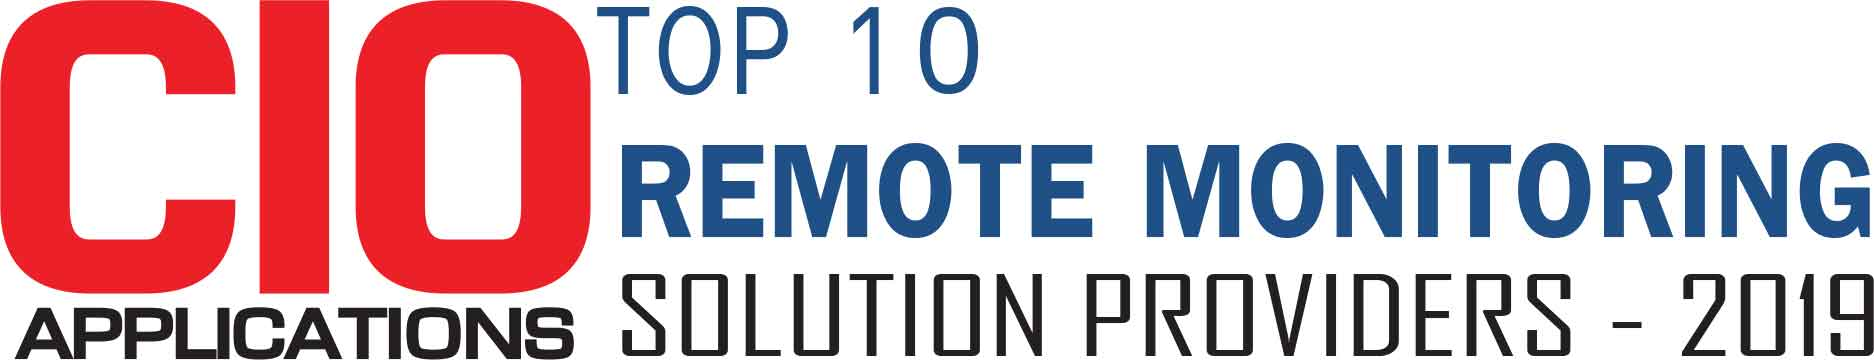 Top 10 Remote Monitoring Solution Companies - 2019